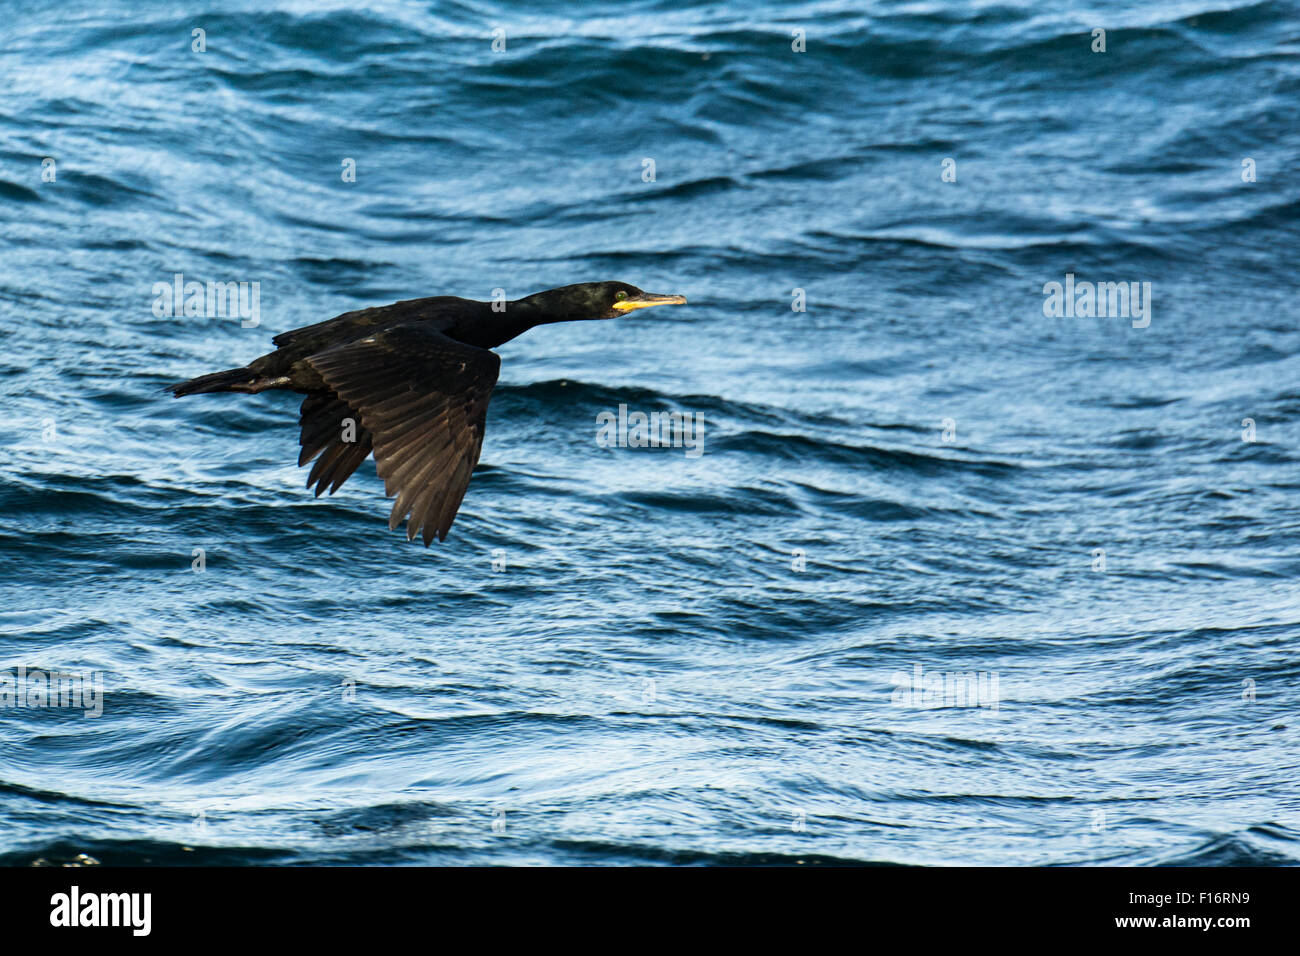 Cormorant or Shag flying over the surface of the sea - Stock Image